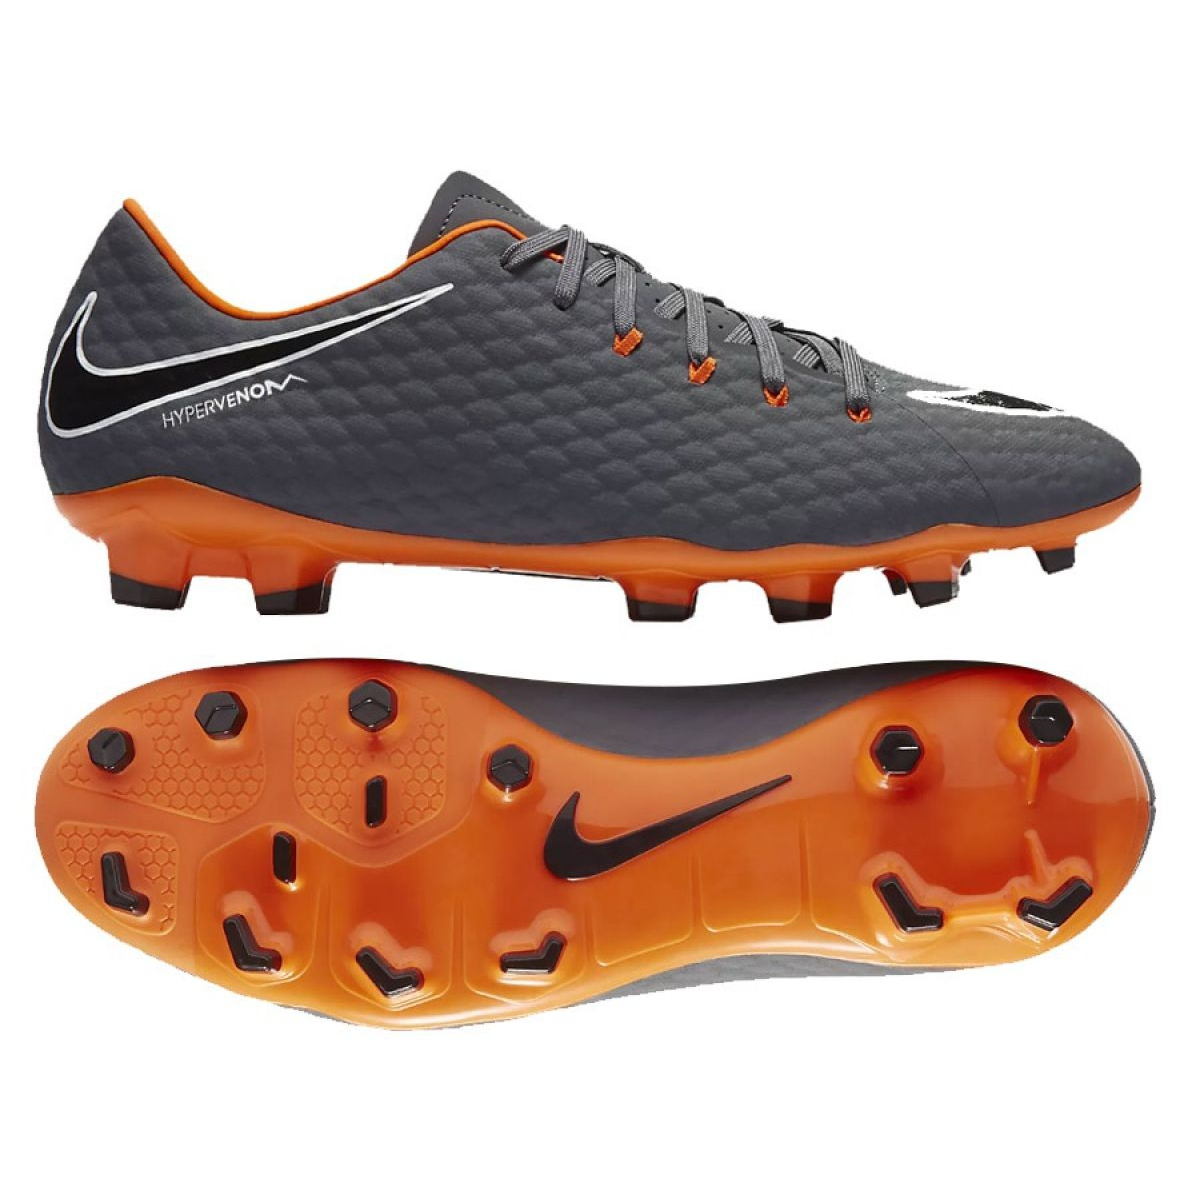 new style 7def1 91326 Football shoes Nike Hypervenom Phantom 3 Academy Fg M AH7271-081